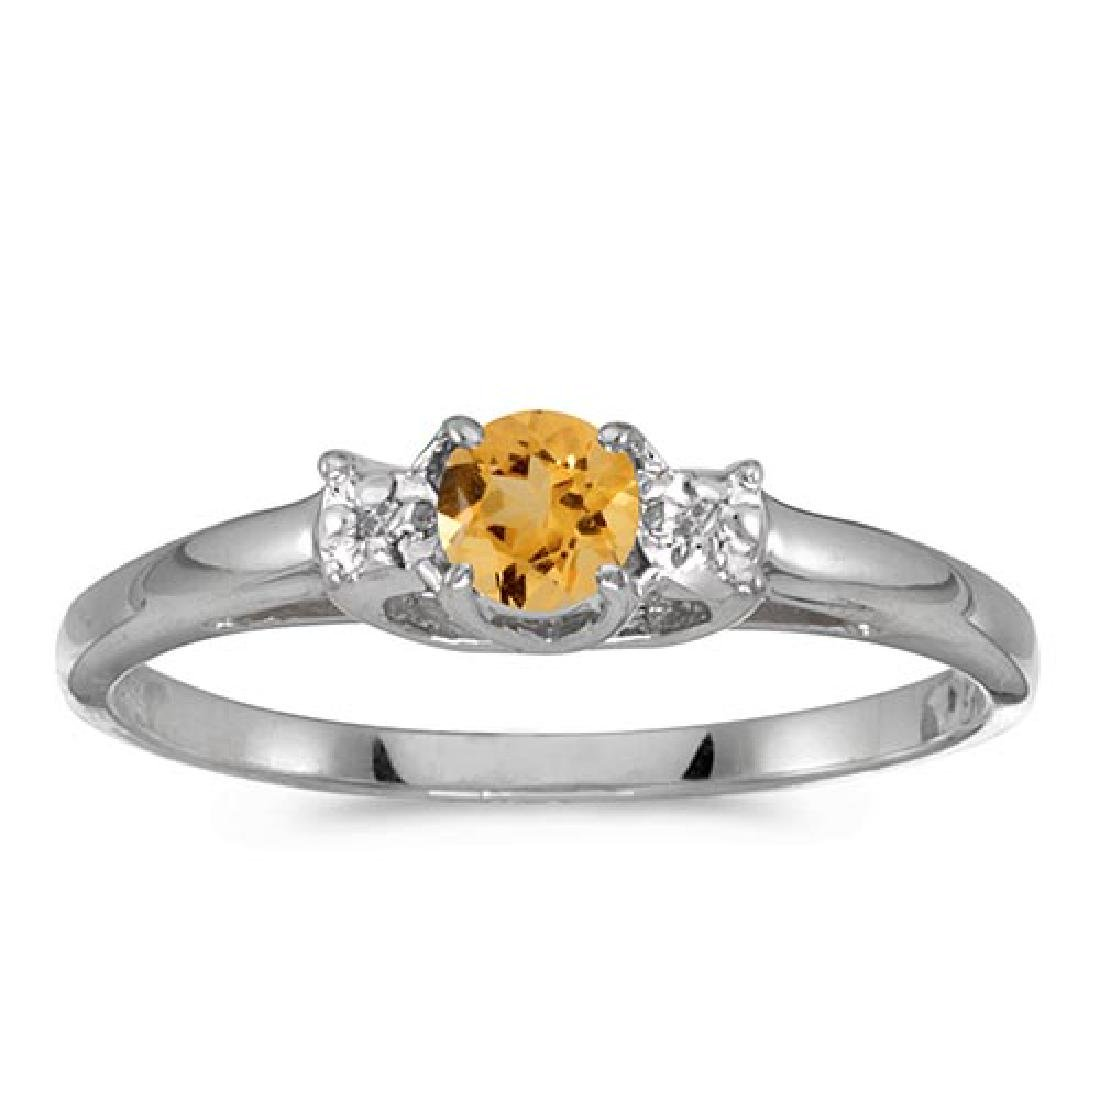 Certified 14k White Gold Round Citrine And Diamond Ring